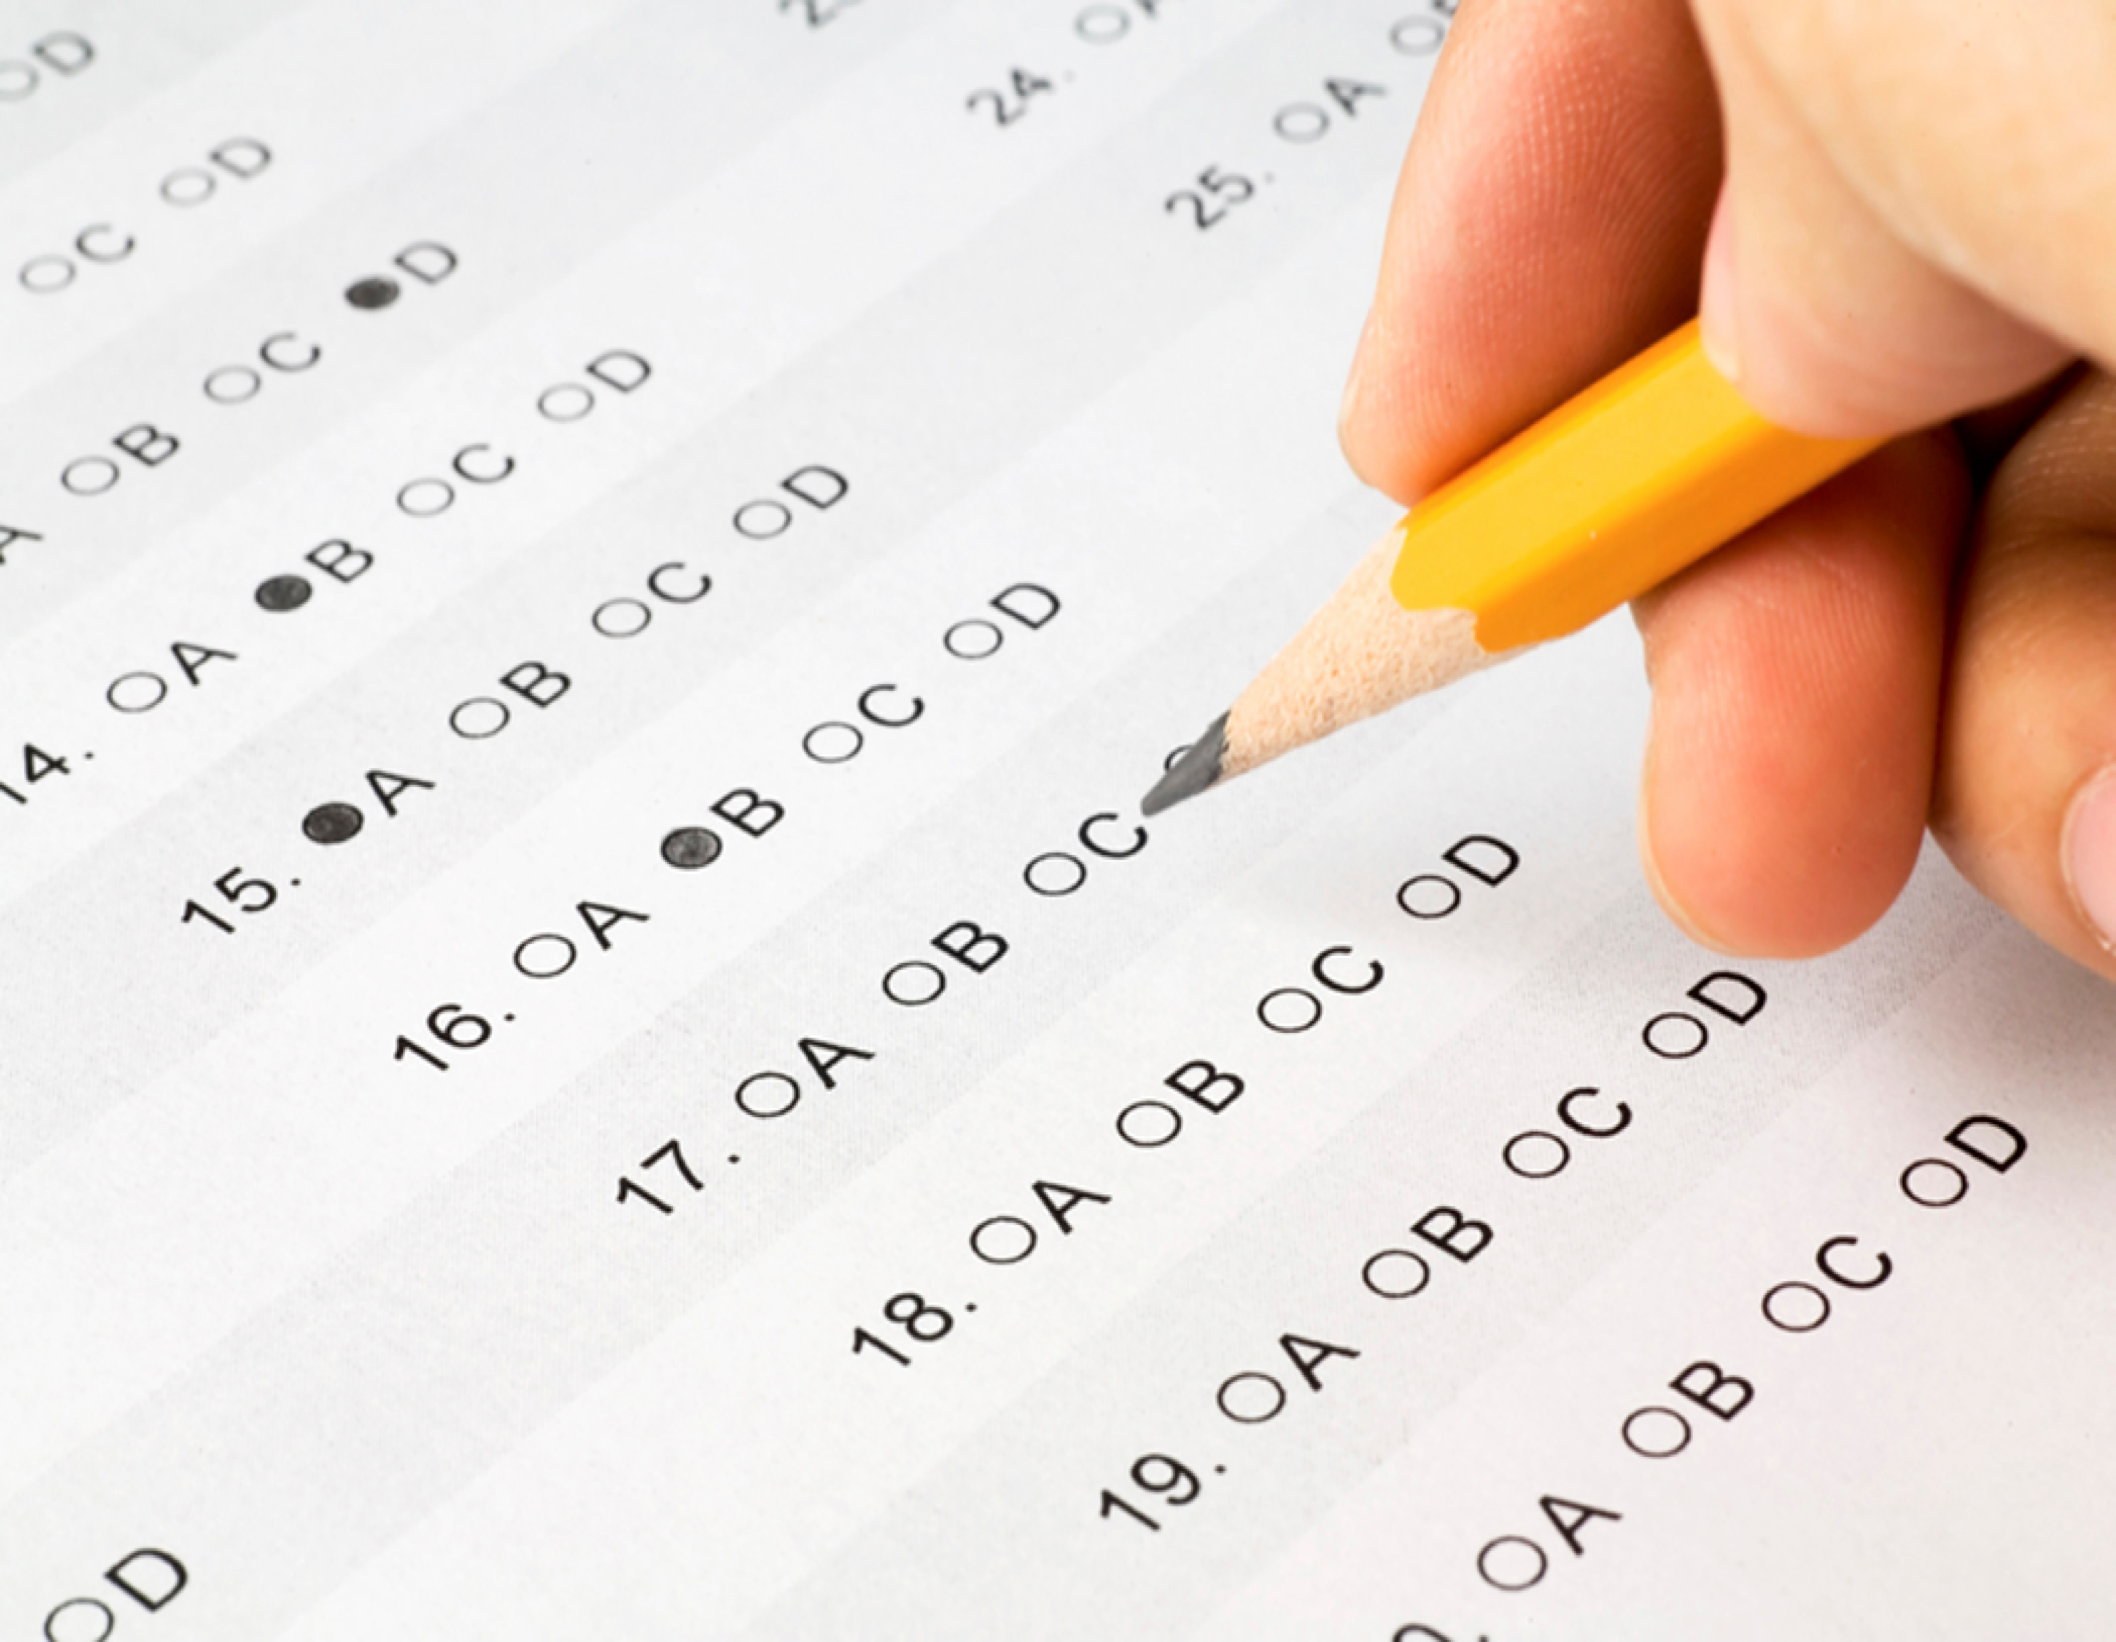 scantron exam